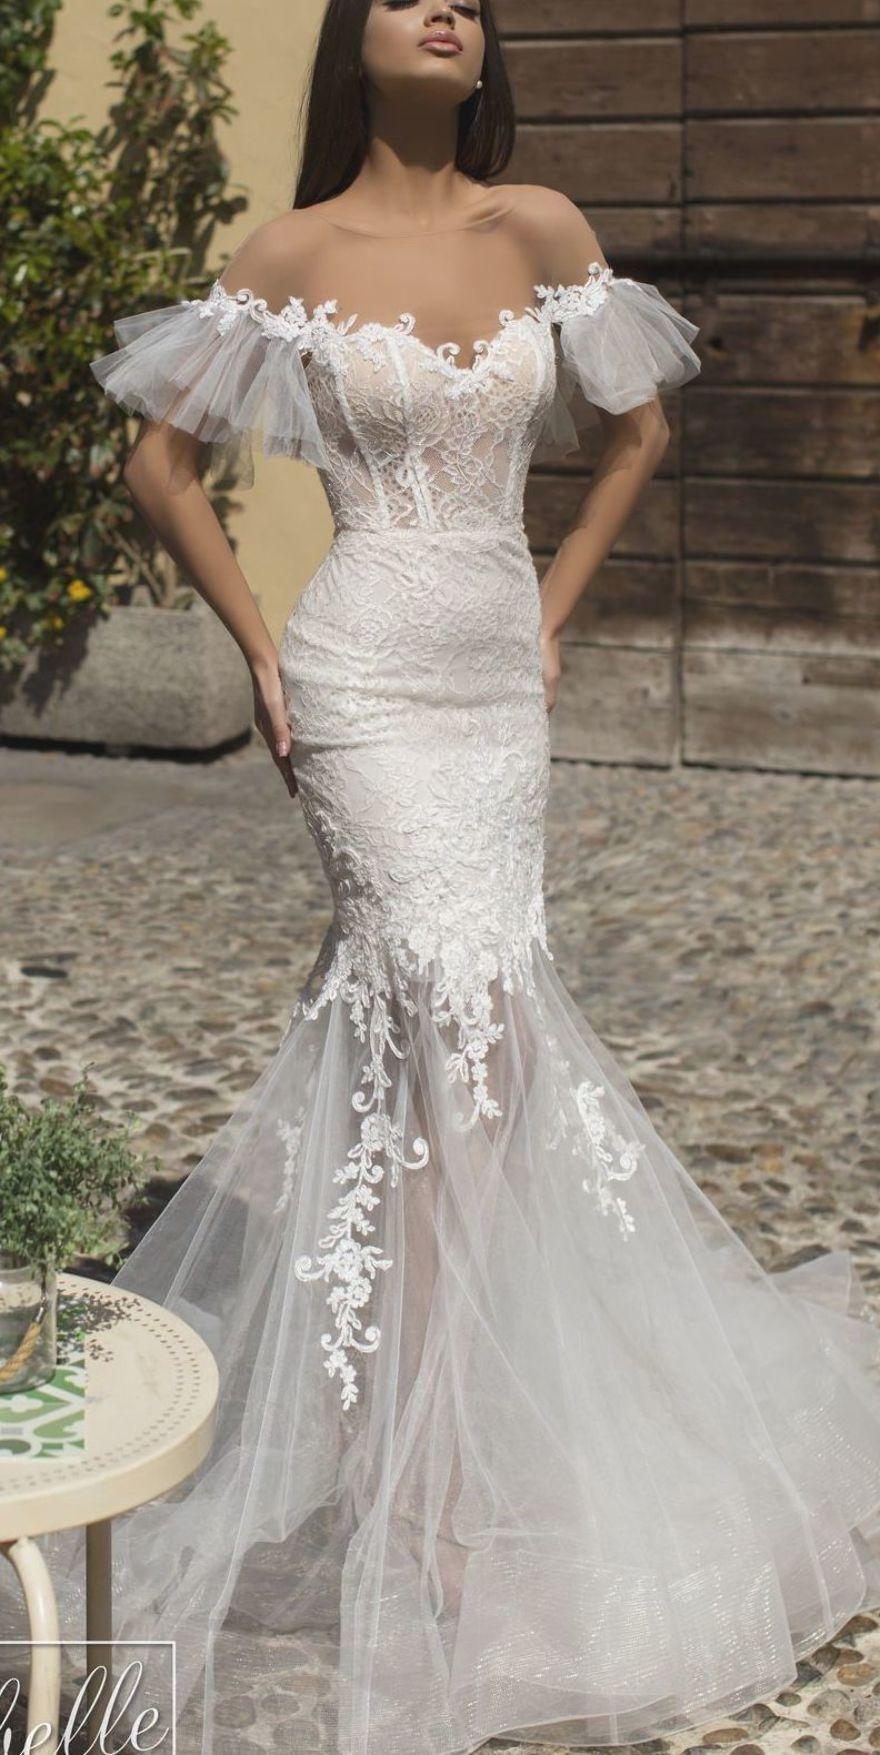 Wedding Dresses 2019 - The White Bridal Collection. Mermaid lace wedding dress with tulle skirt